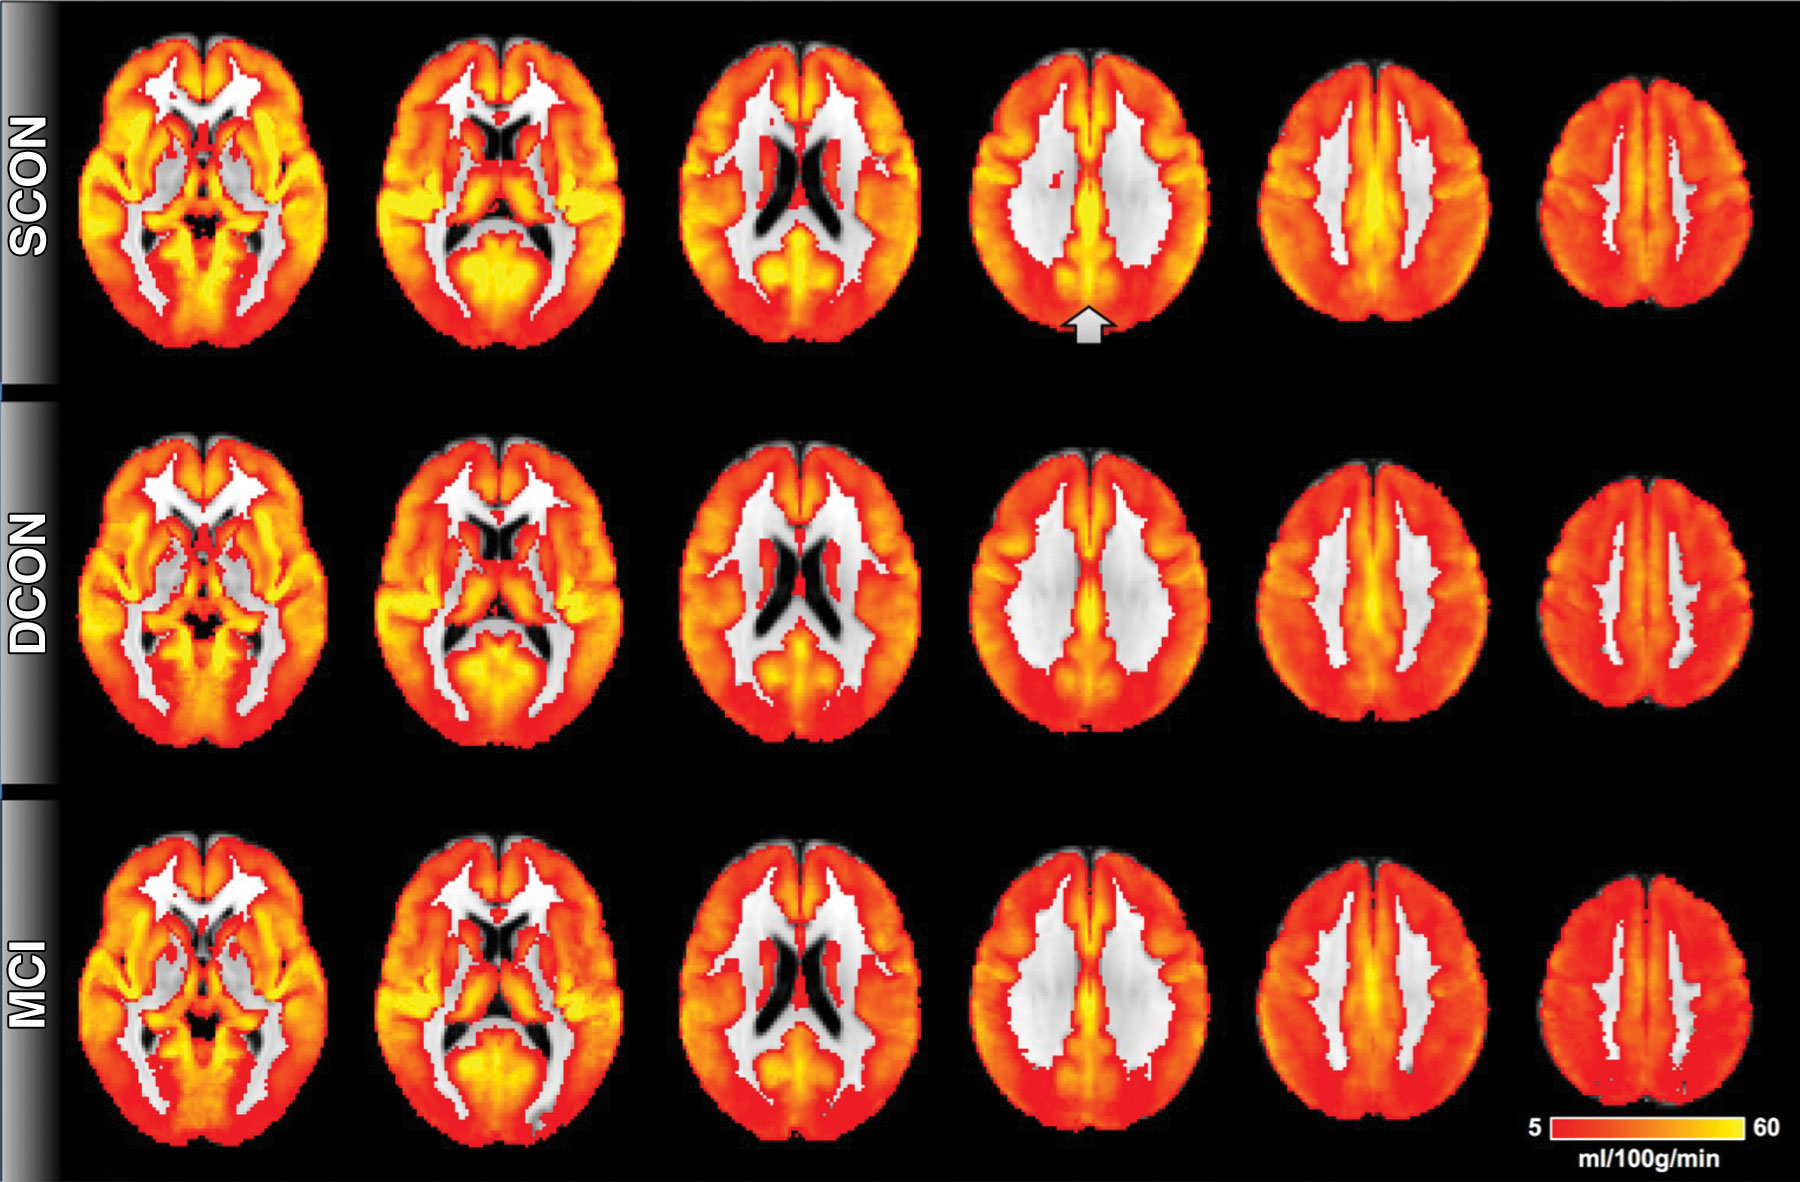 From MCI To Dementia Brain Scans Show Cognitive Decline